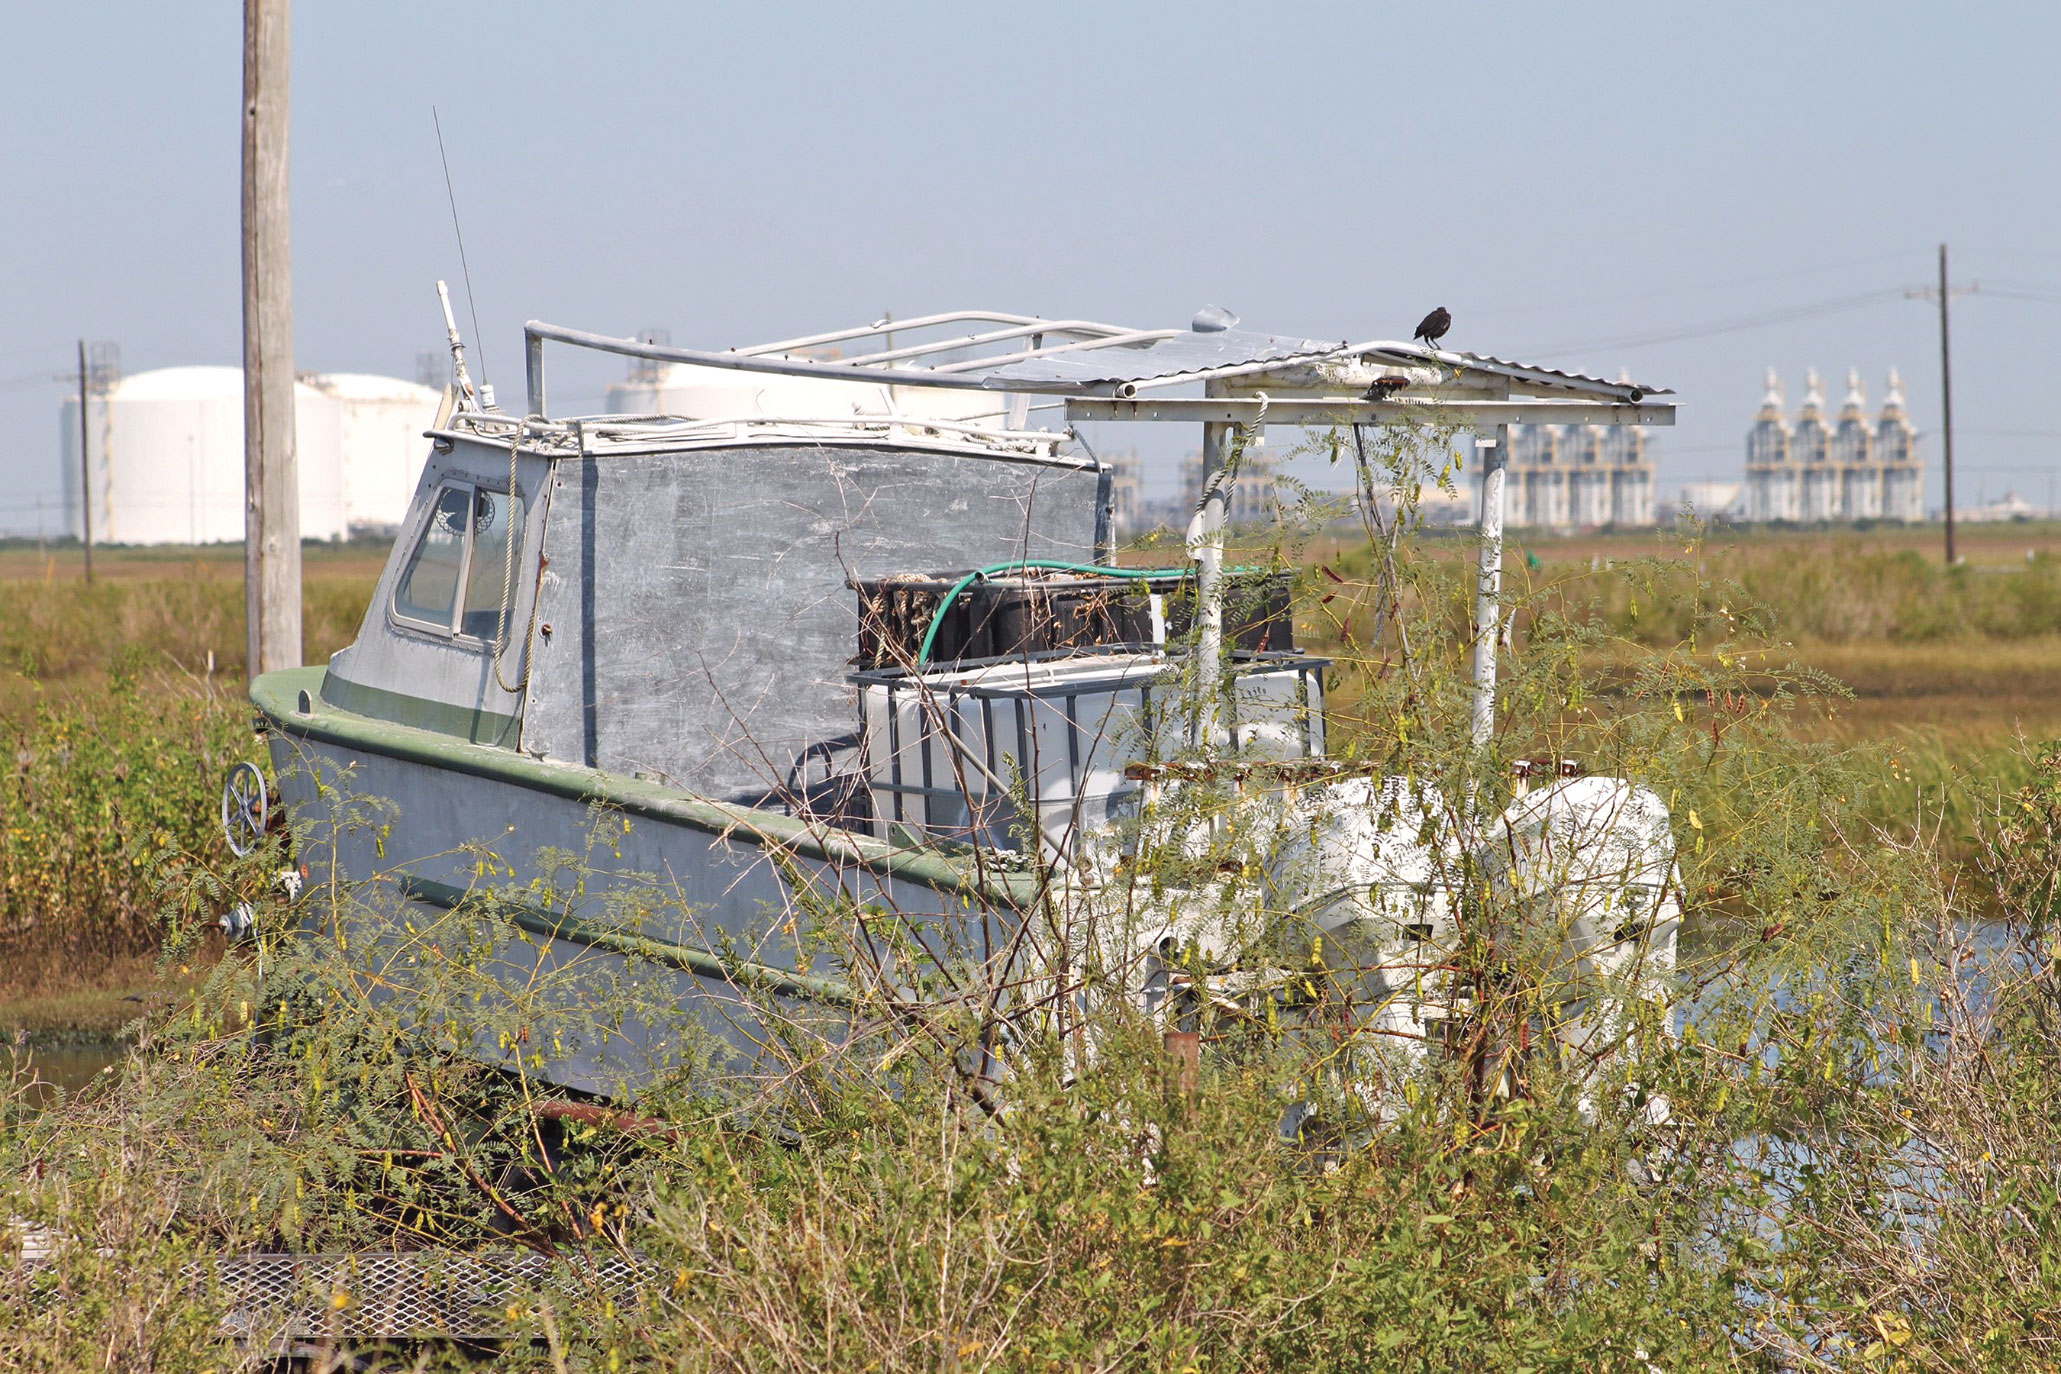 (Courtesy photo) Sabine Pass, Texas — A boat run aground in Sabine Pass, Texas, Sept. 9, 2017, after Hurricane Harvey struck the greater Houston Area in August, 2017. The hurricane initially hit Houston on Aug. 25, 2017, and continued to make landfall two more times before moving back out into the Gulf of Mexico.